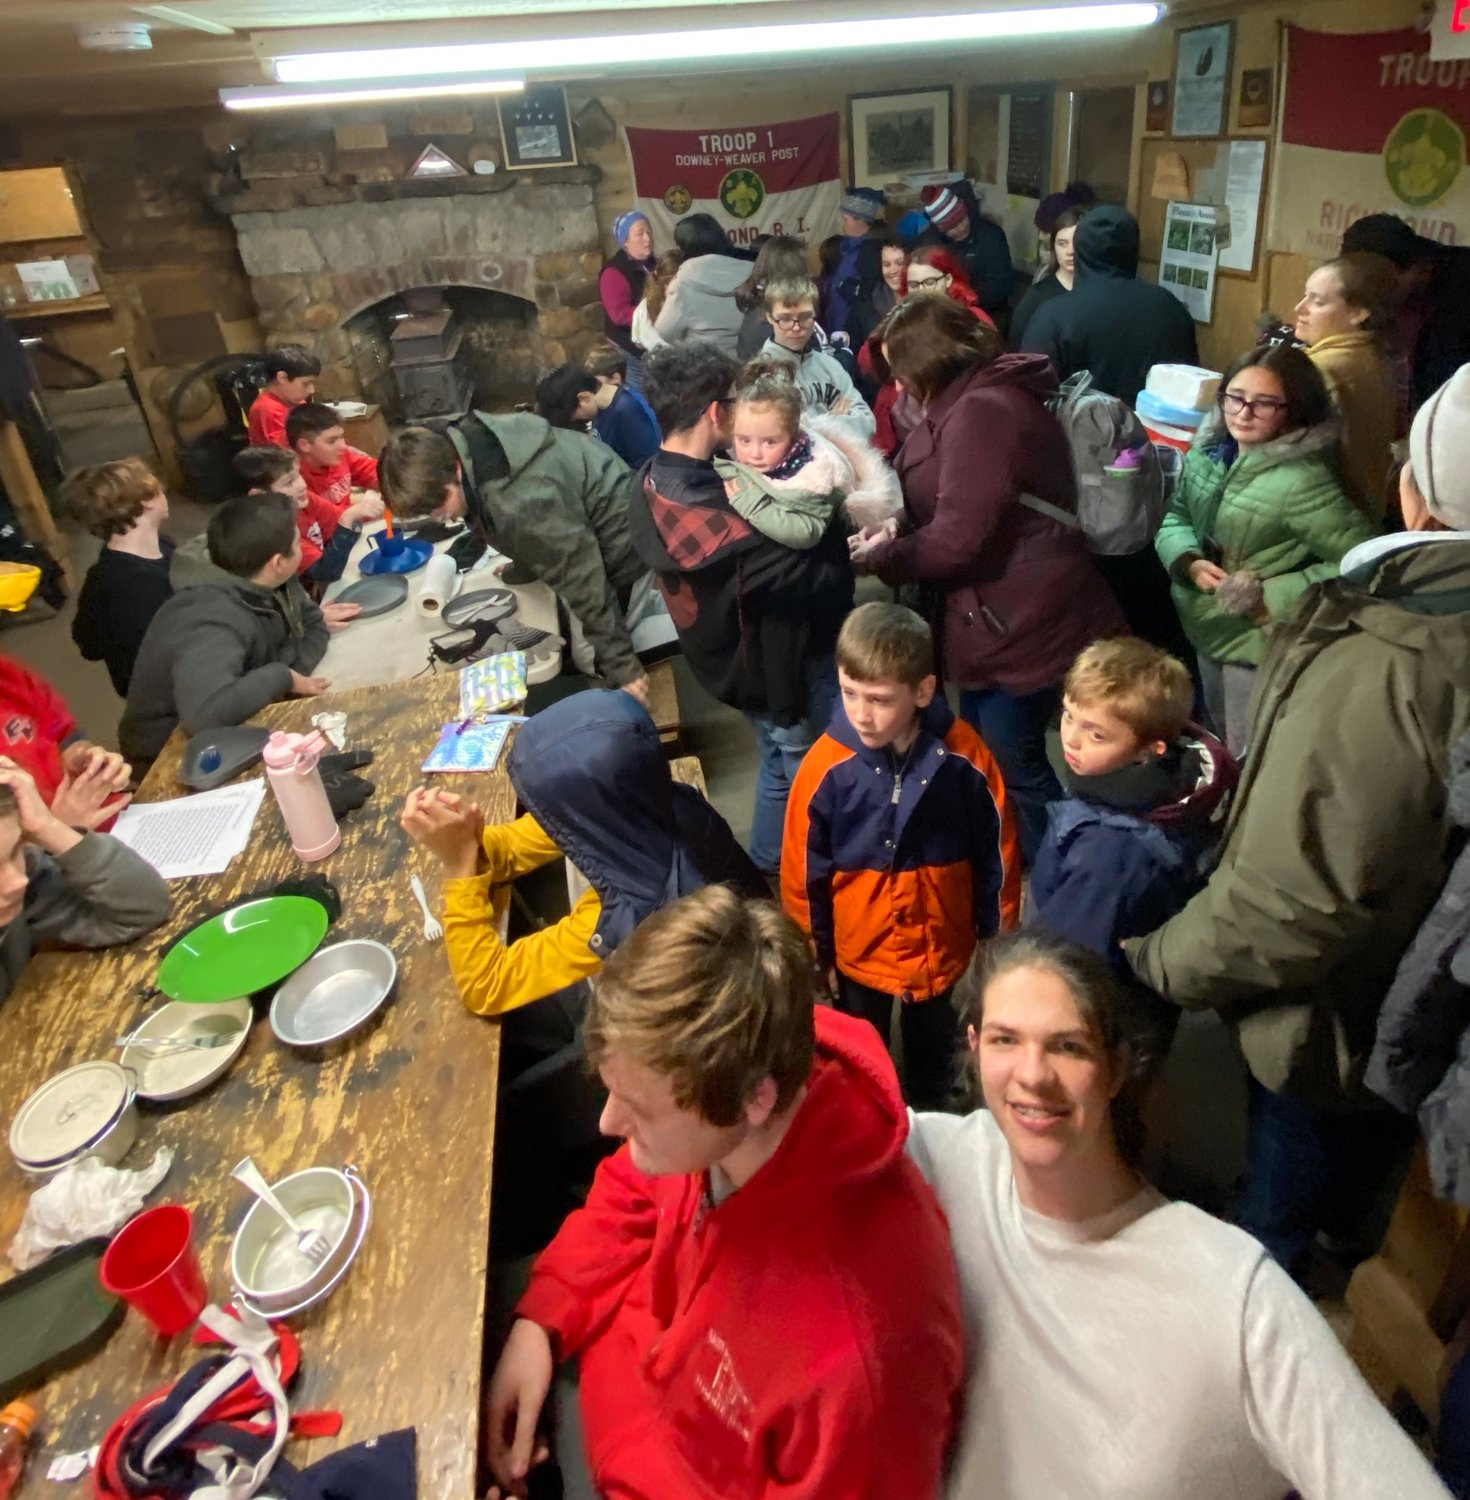 Great turnout of scouts family and friends at our Trash Can Turkey Thanksgiving campout dinner.